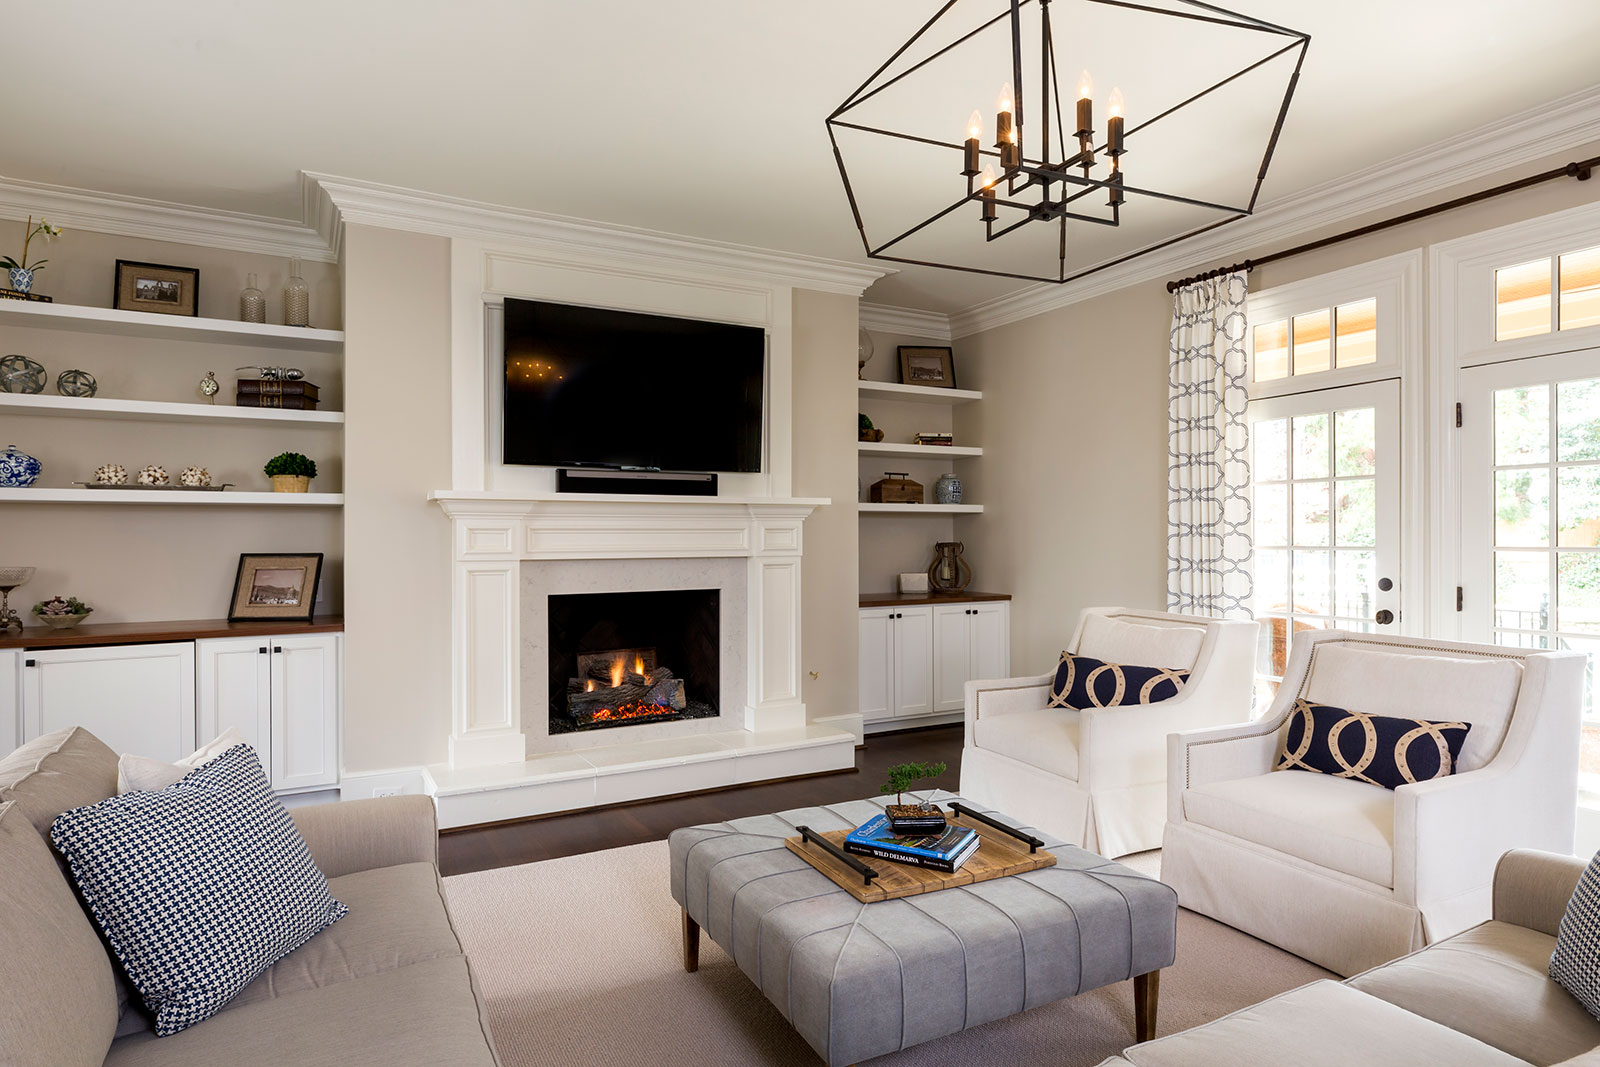 Edgecomb Gray in the living room with blue accents